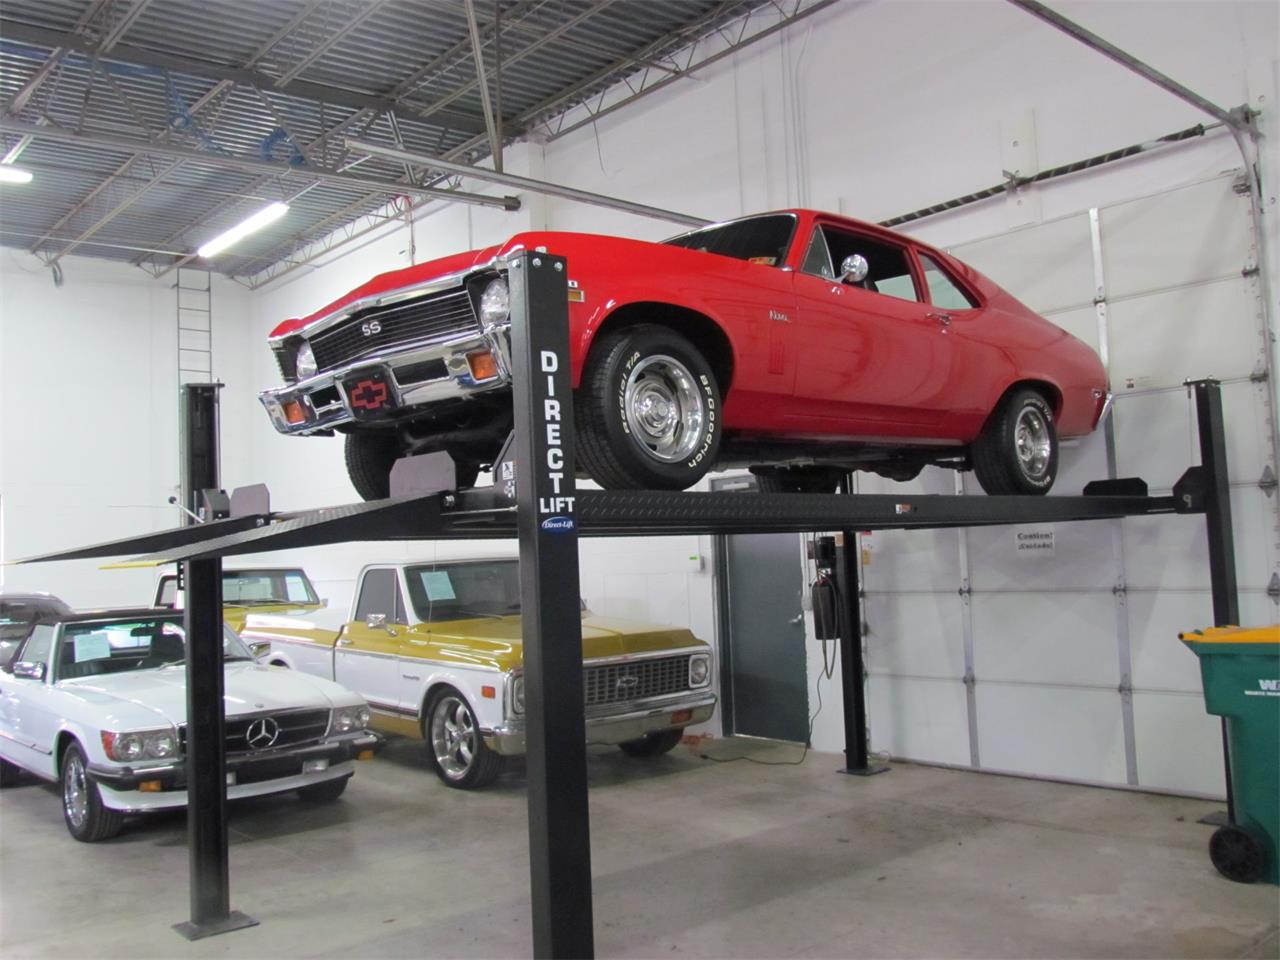 Large Picture of '70 Chevrolet Nova located in Gurnee Illinois - $29,995.00 Offered by Black Hawk Motors - Q1DC